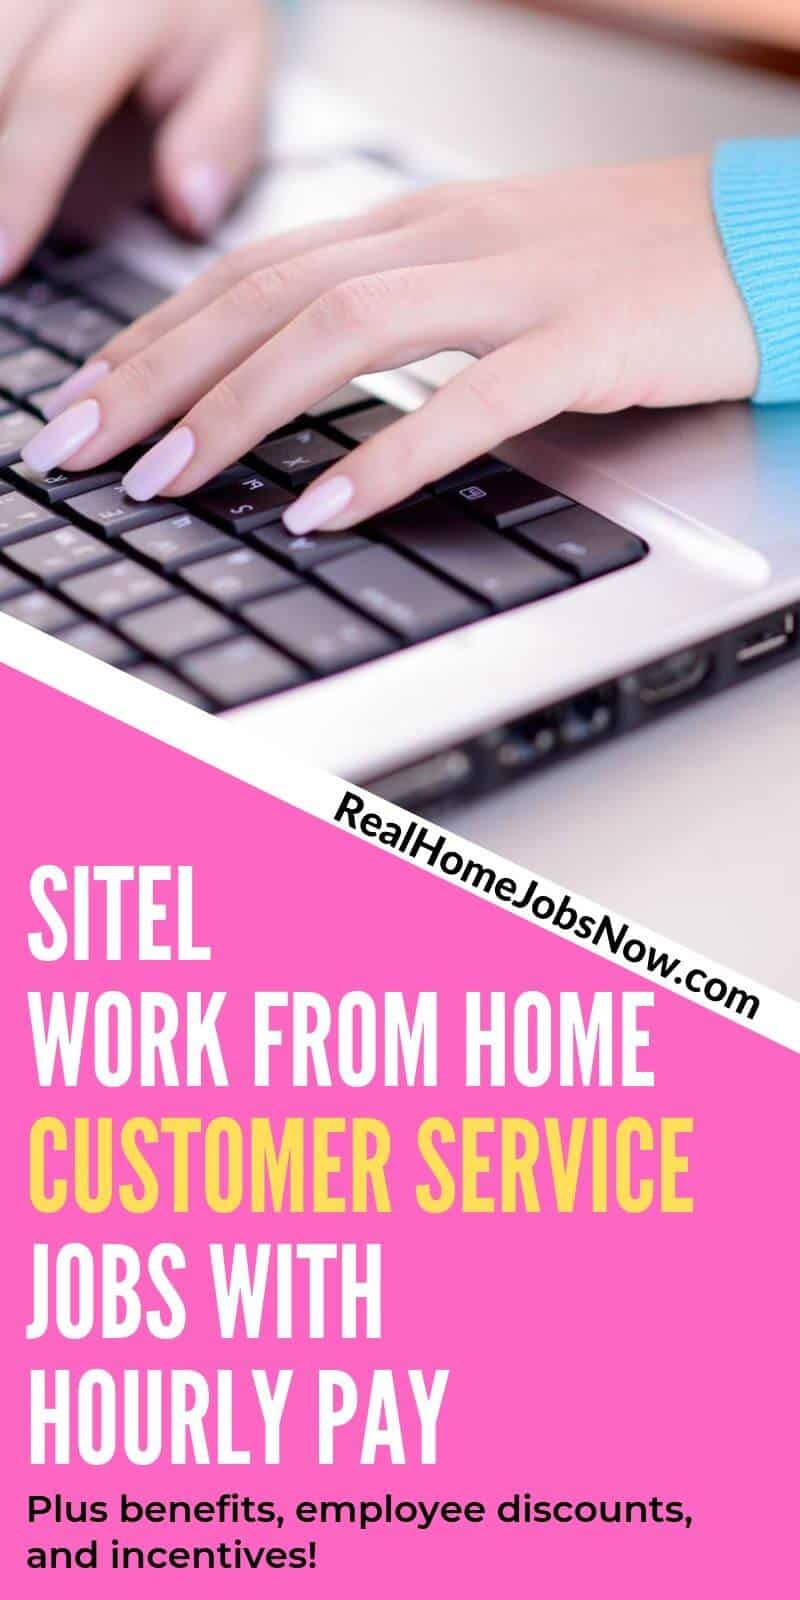 Sitel Work At Home Customer Service Jobs With Benefits